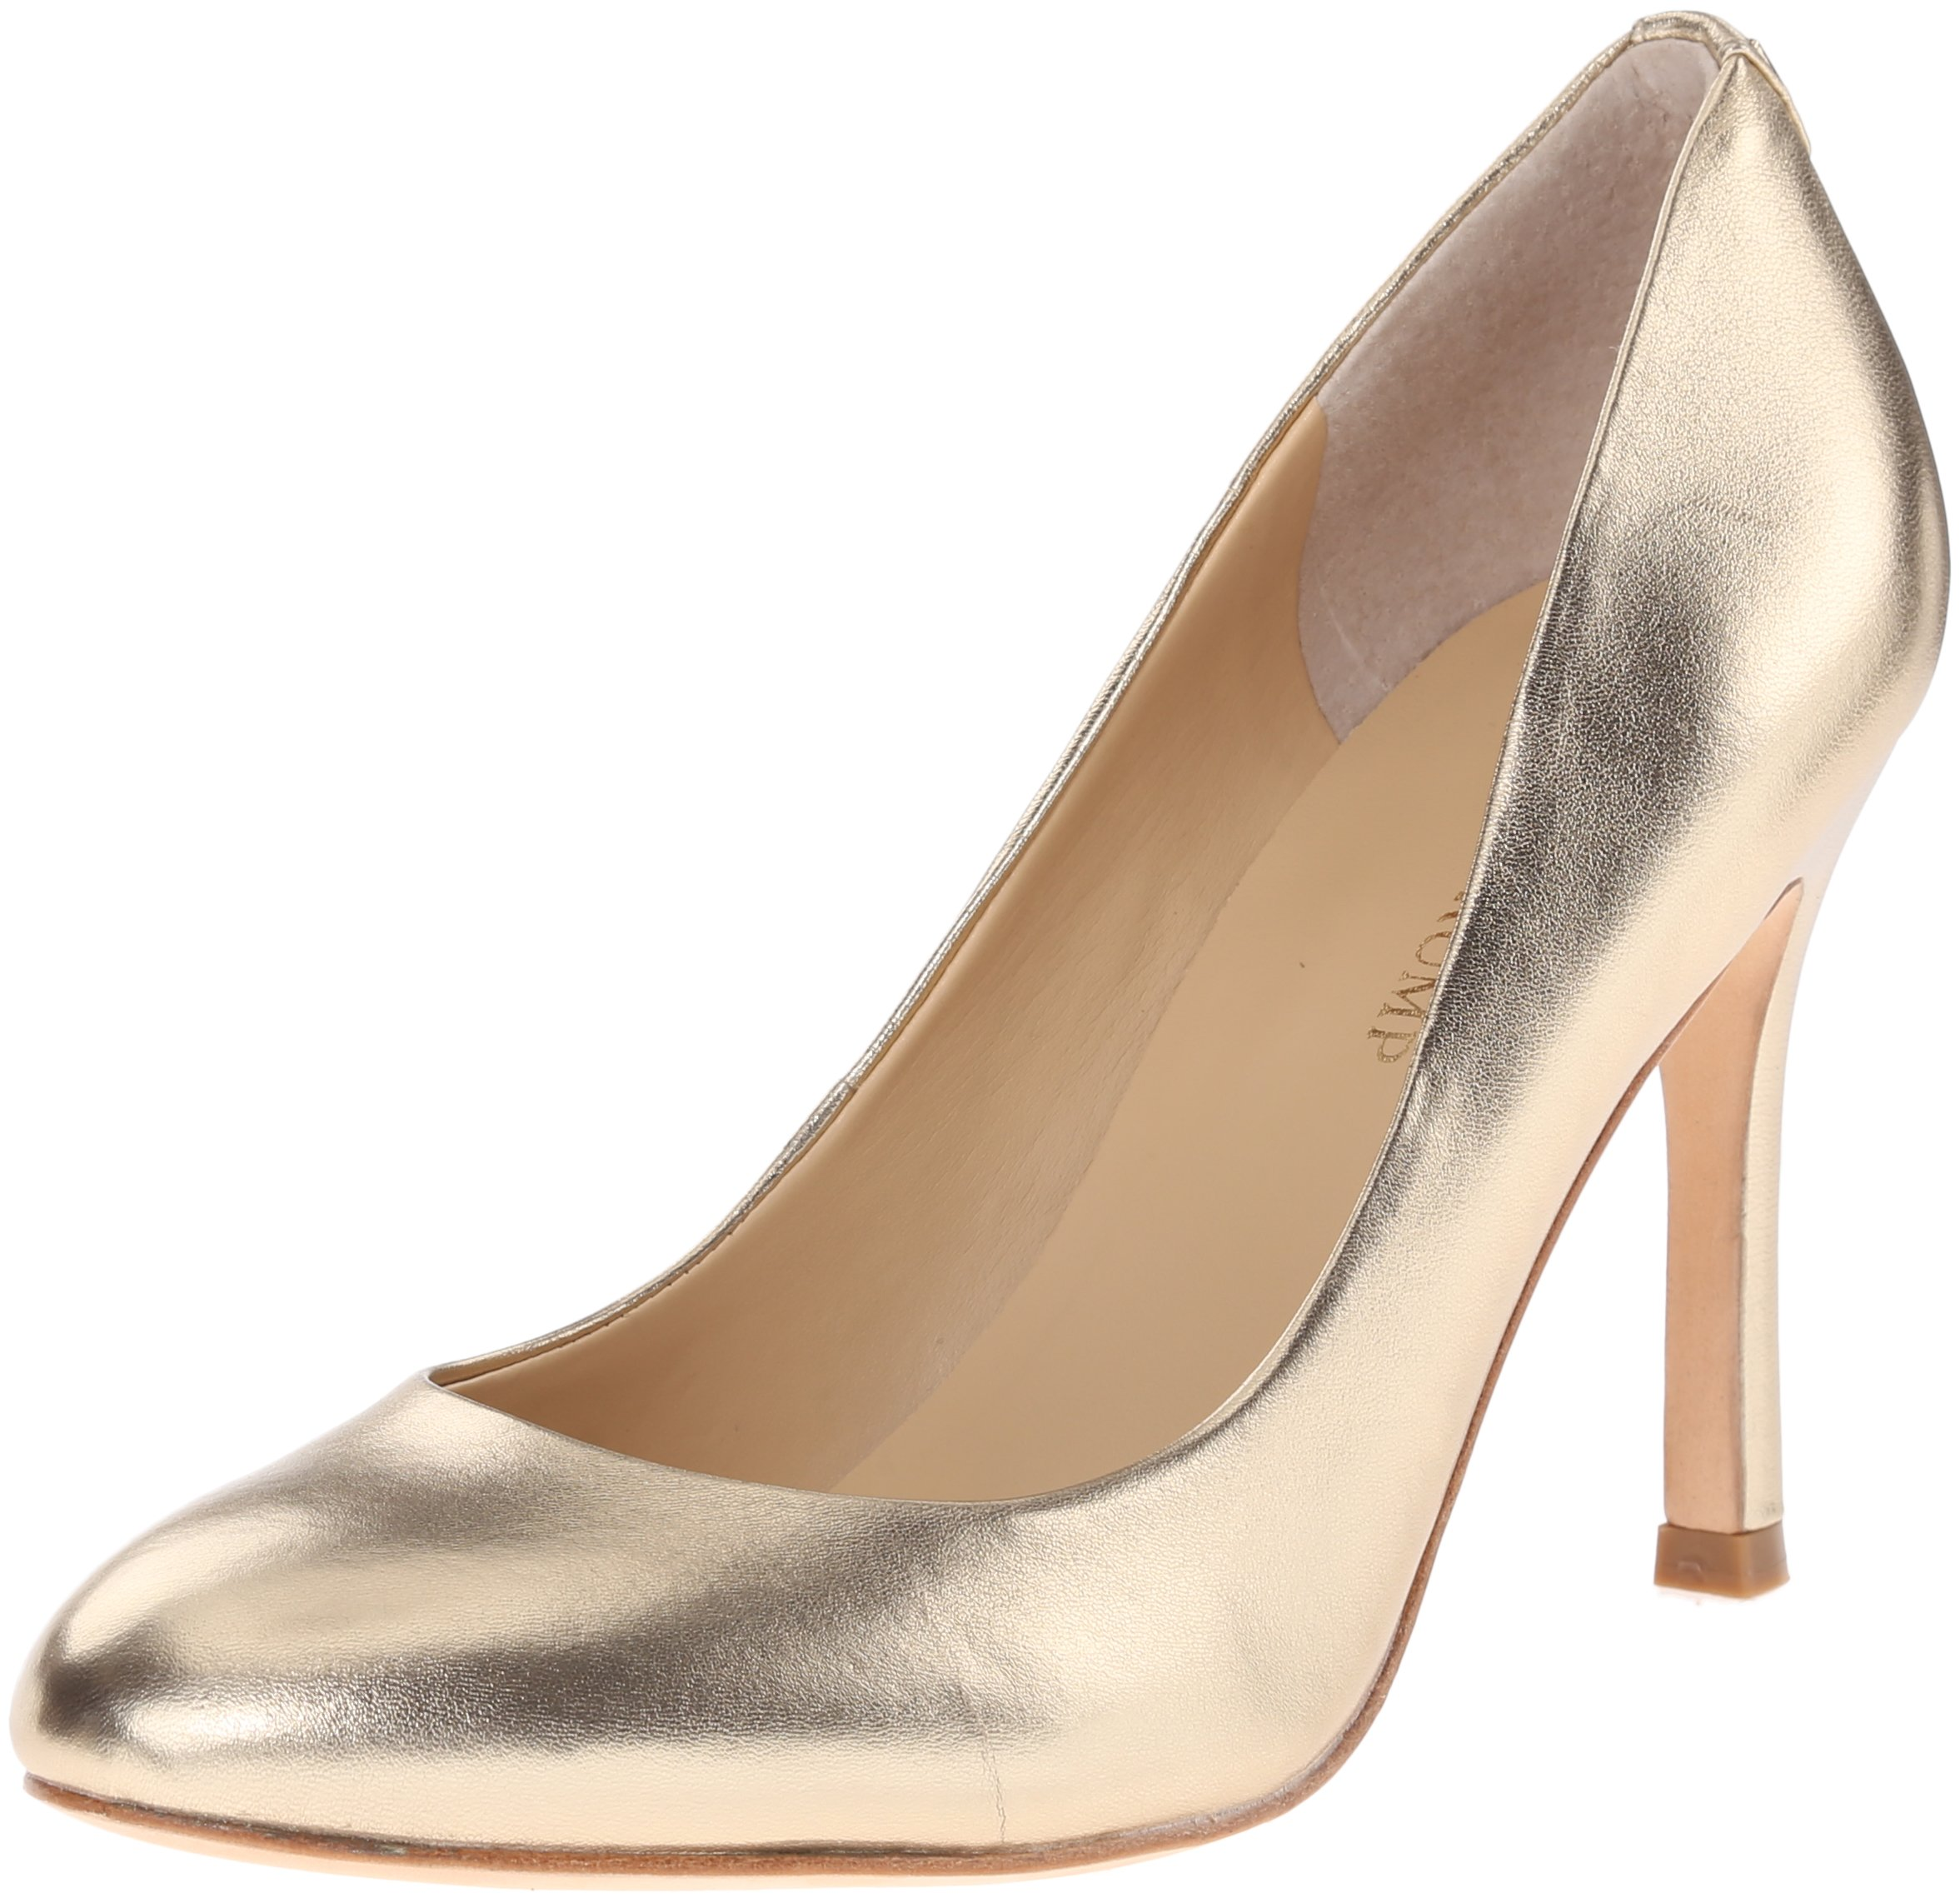 Ivanka Trump Women's Janie Dress Pump, Gold, 9 M US by Ivanka Trump